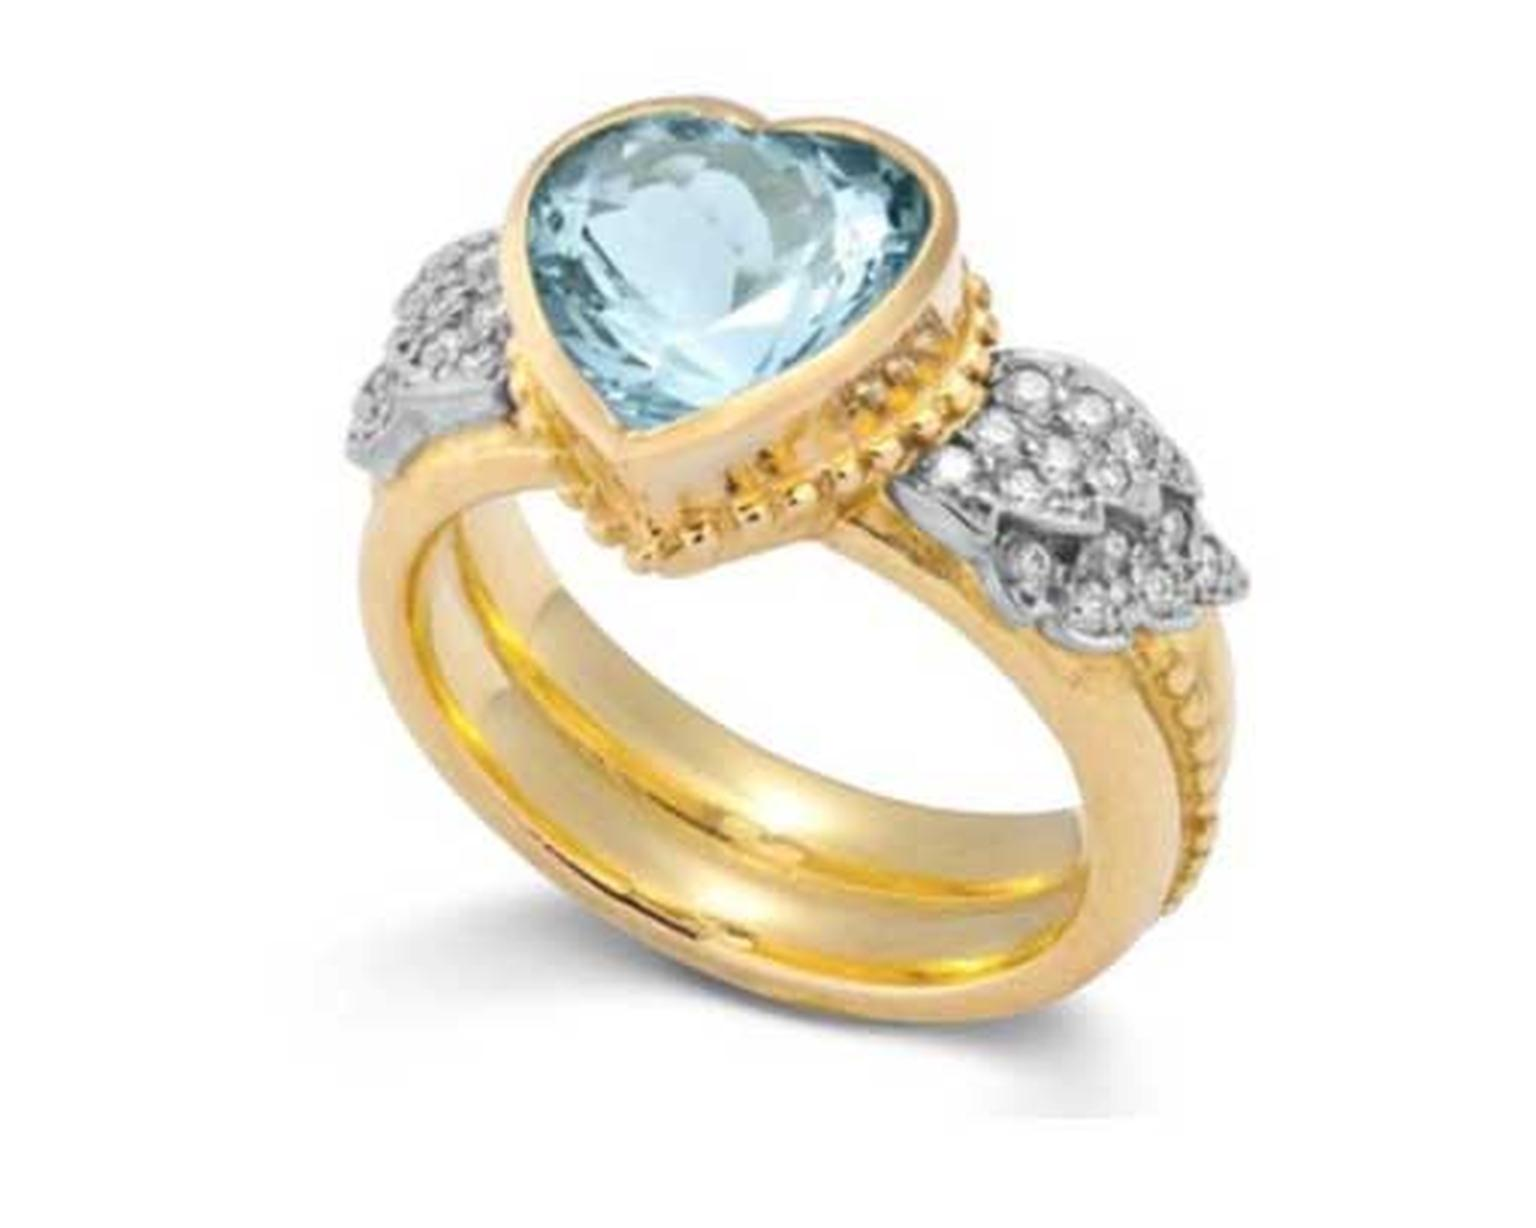 Sophie Harley aquamarine ring, set with a 2.5ct heart-shaped aquamarine flanked by pavé diamond wings.